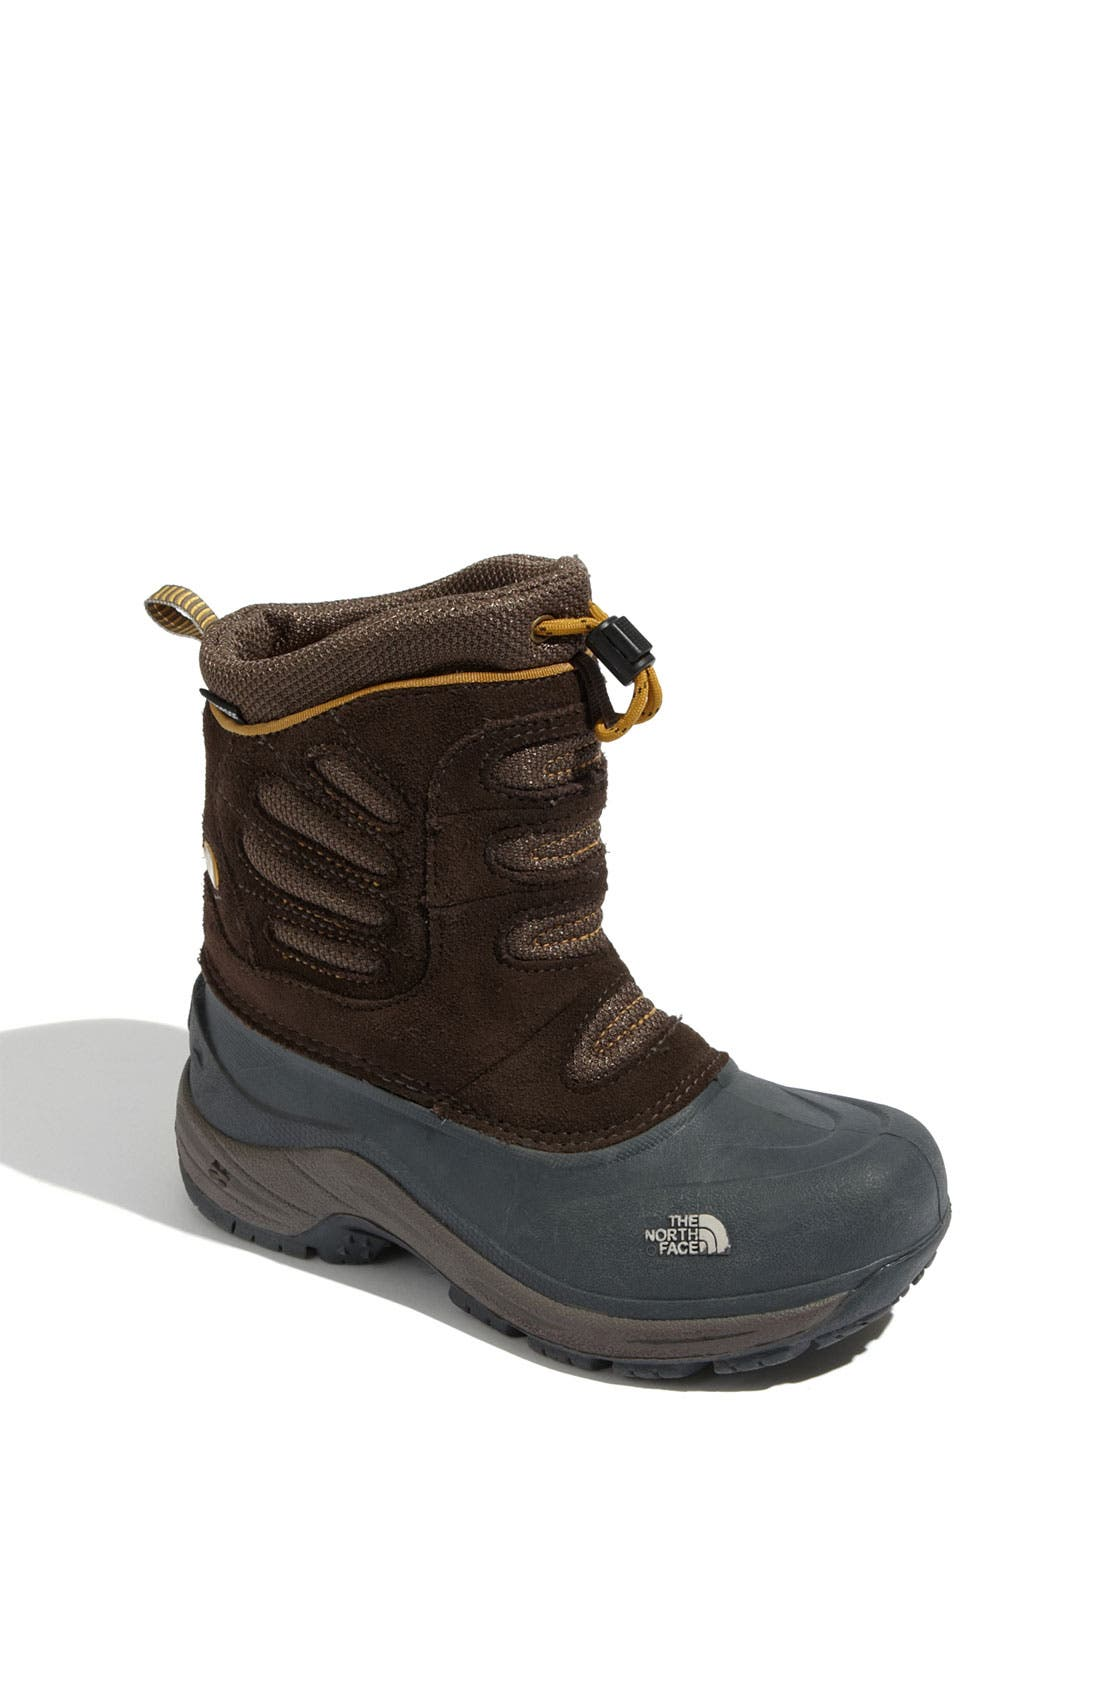 Main Image - The North Face 'Snow Plough' Boot (Little Kids & Big Kids)